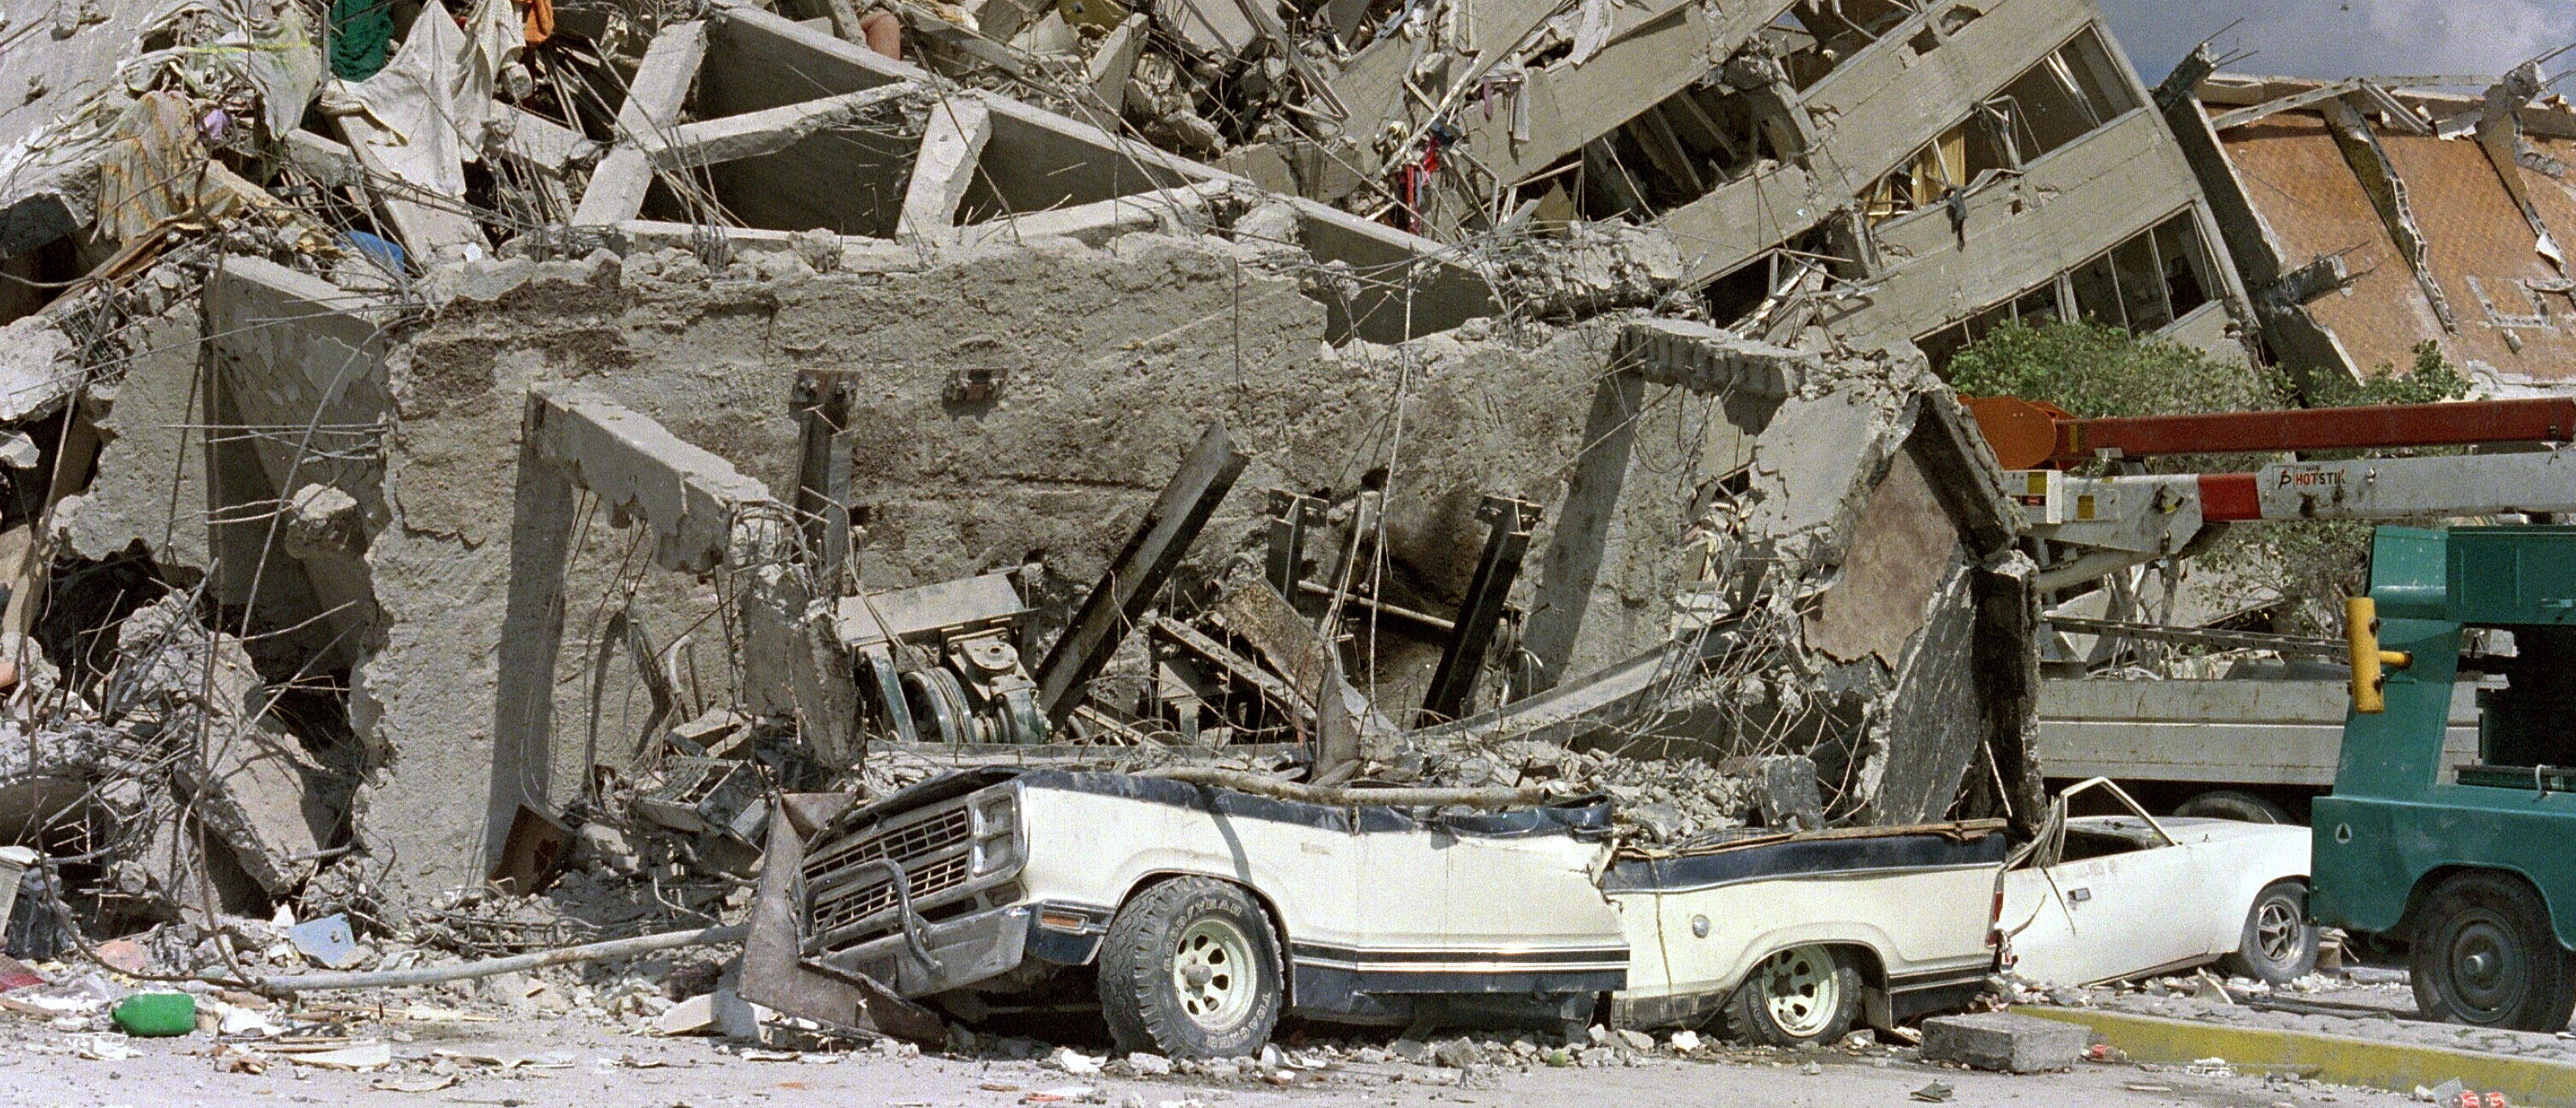 """Rescue workers and volunteers sift through the rubble of a collapsed building in """"Zona Rosa"""" area of Mexico City, a popular commercial and tourist area, 21 September1985, after an earthquake leveled parts of the city 19 September 1985. JONATHAN UTZ/AFP/Getty Images"""